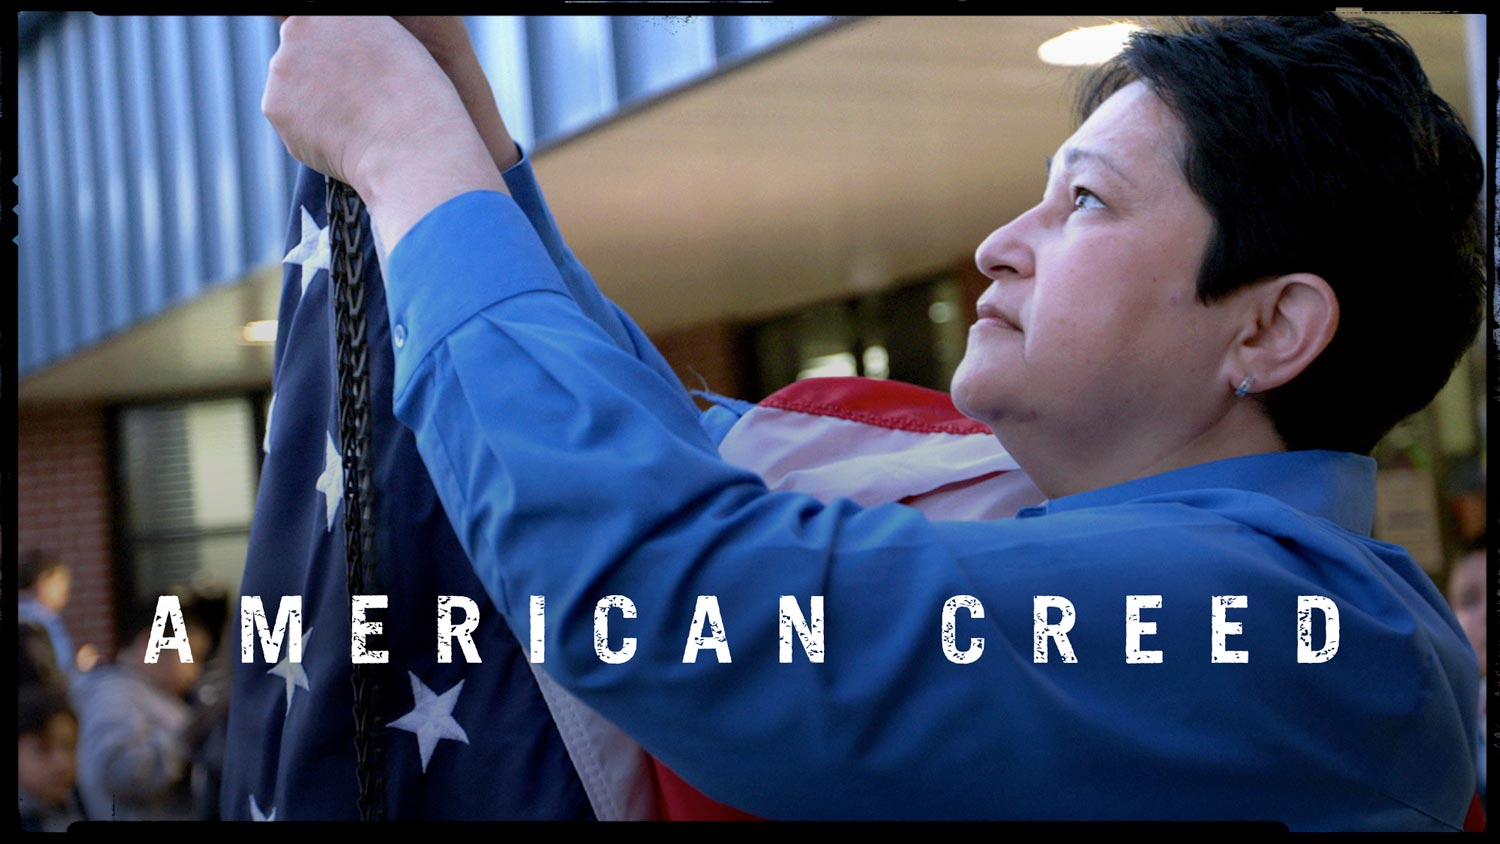 AmericanCreed_PBS-Promo-Graphic-2